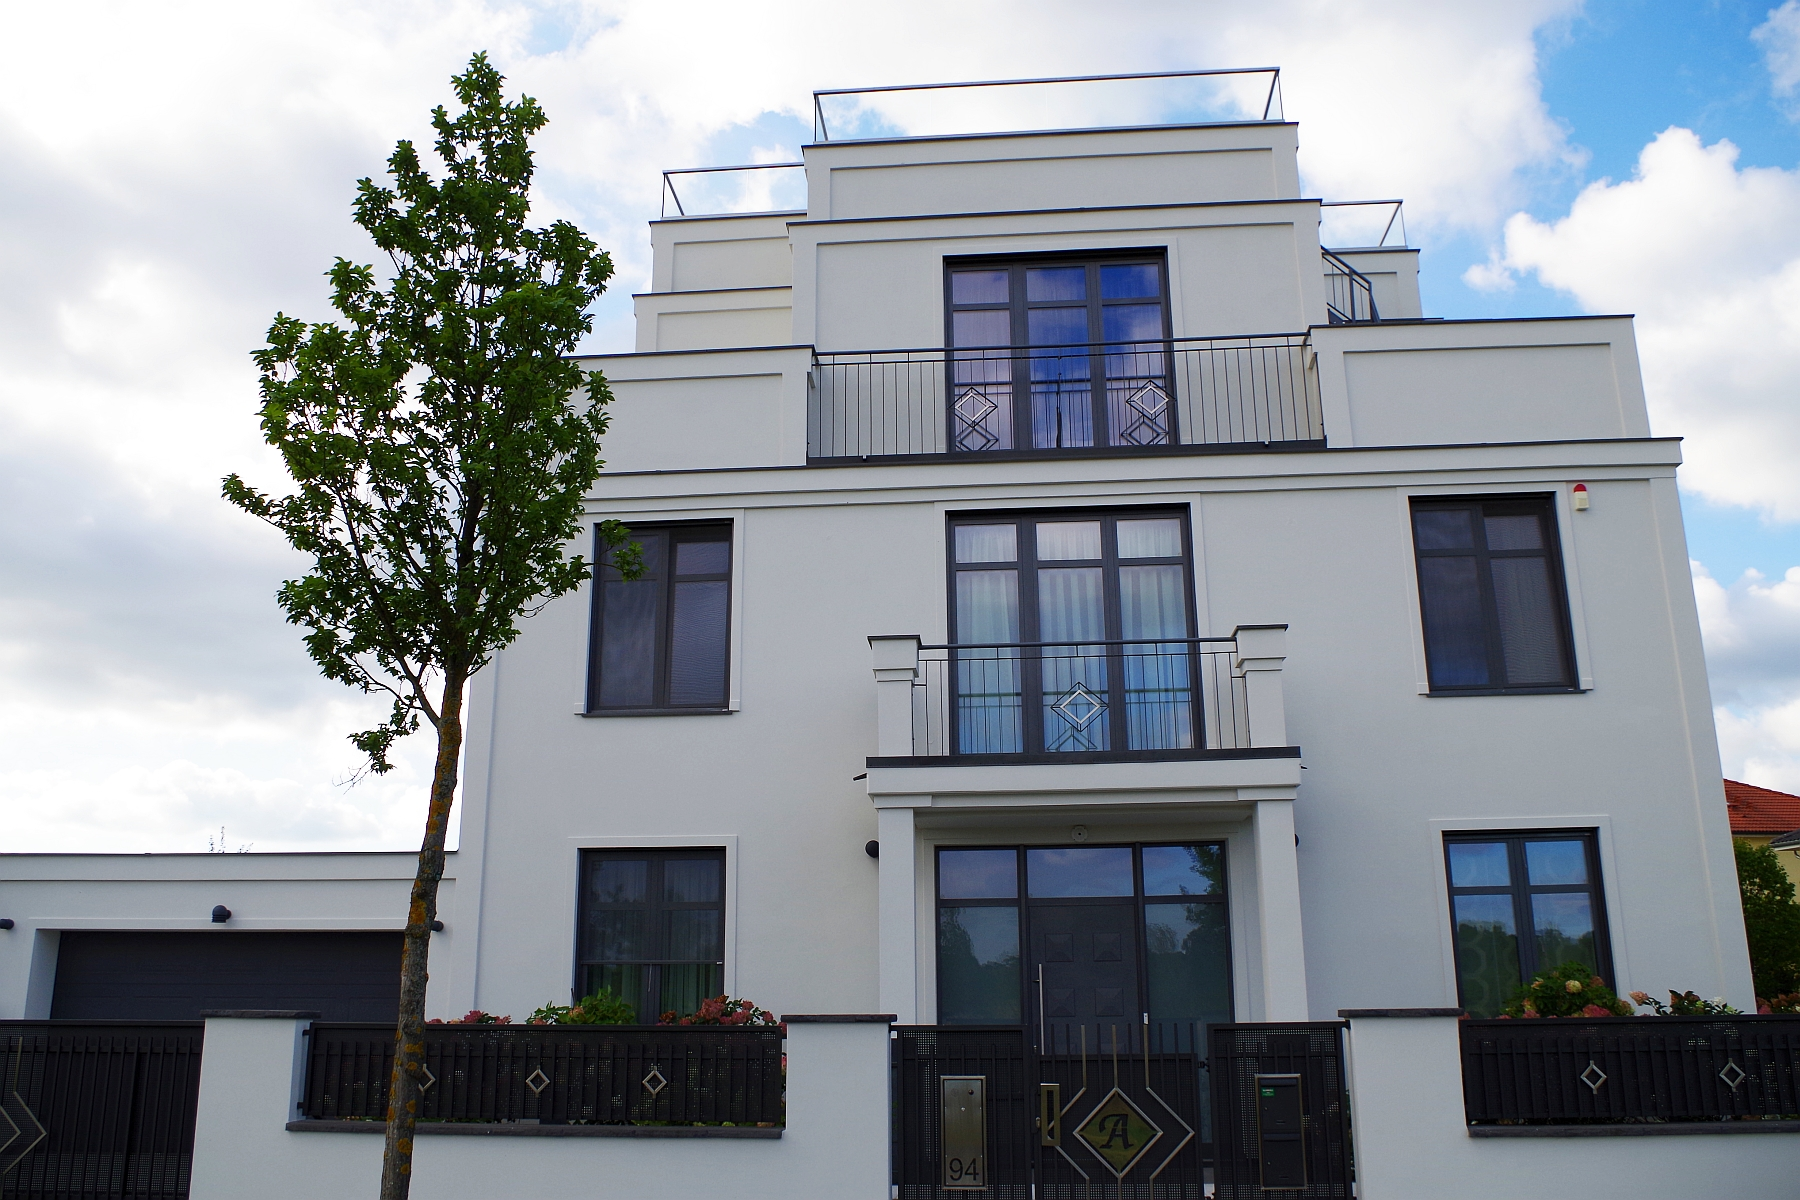 Single Family Home for Sale at Stylish elegance at landscape park Berlin-Gatow! Berlin, Berlin, 14089 Germany